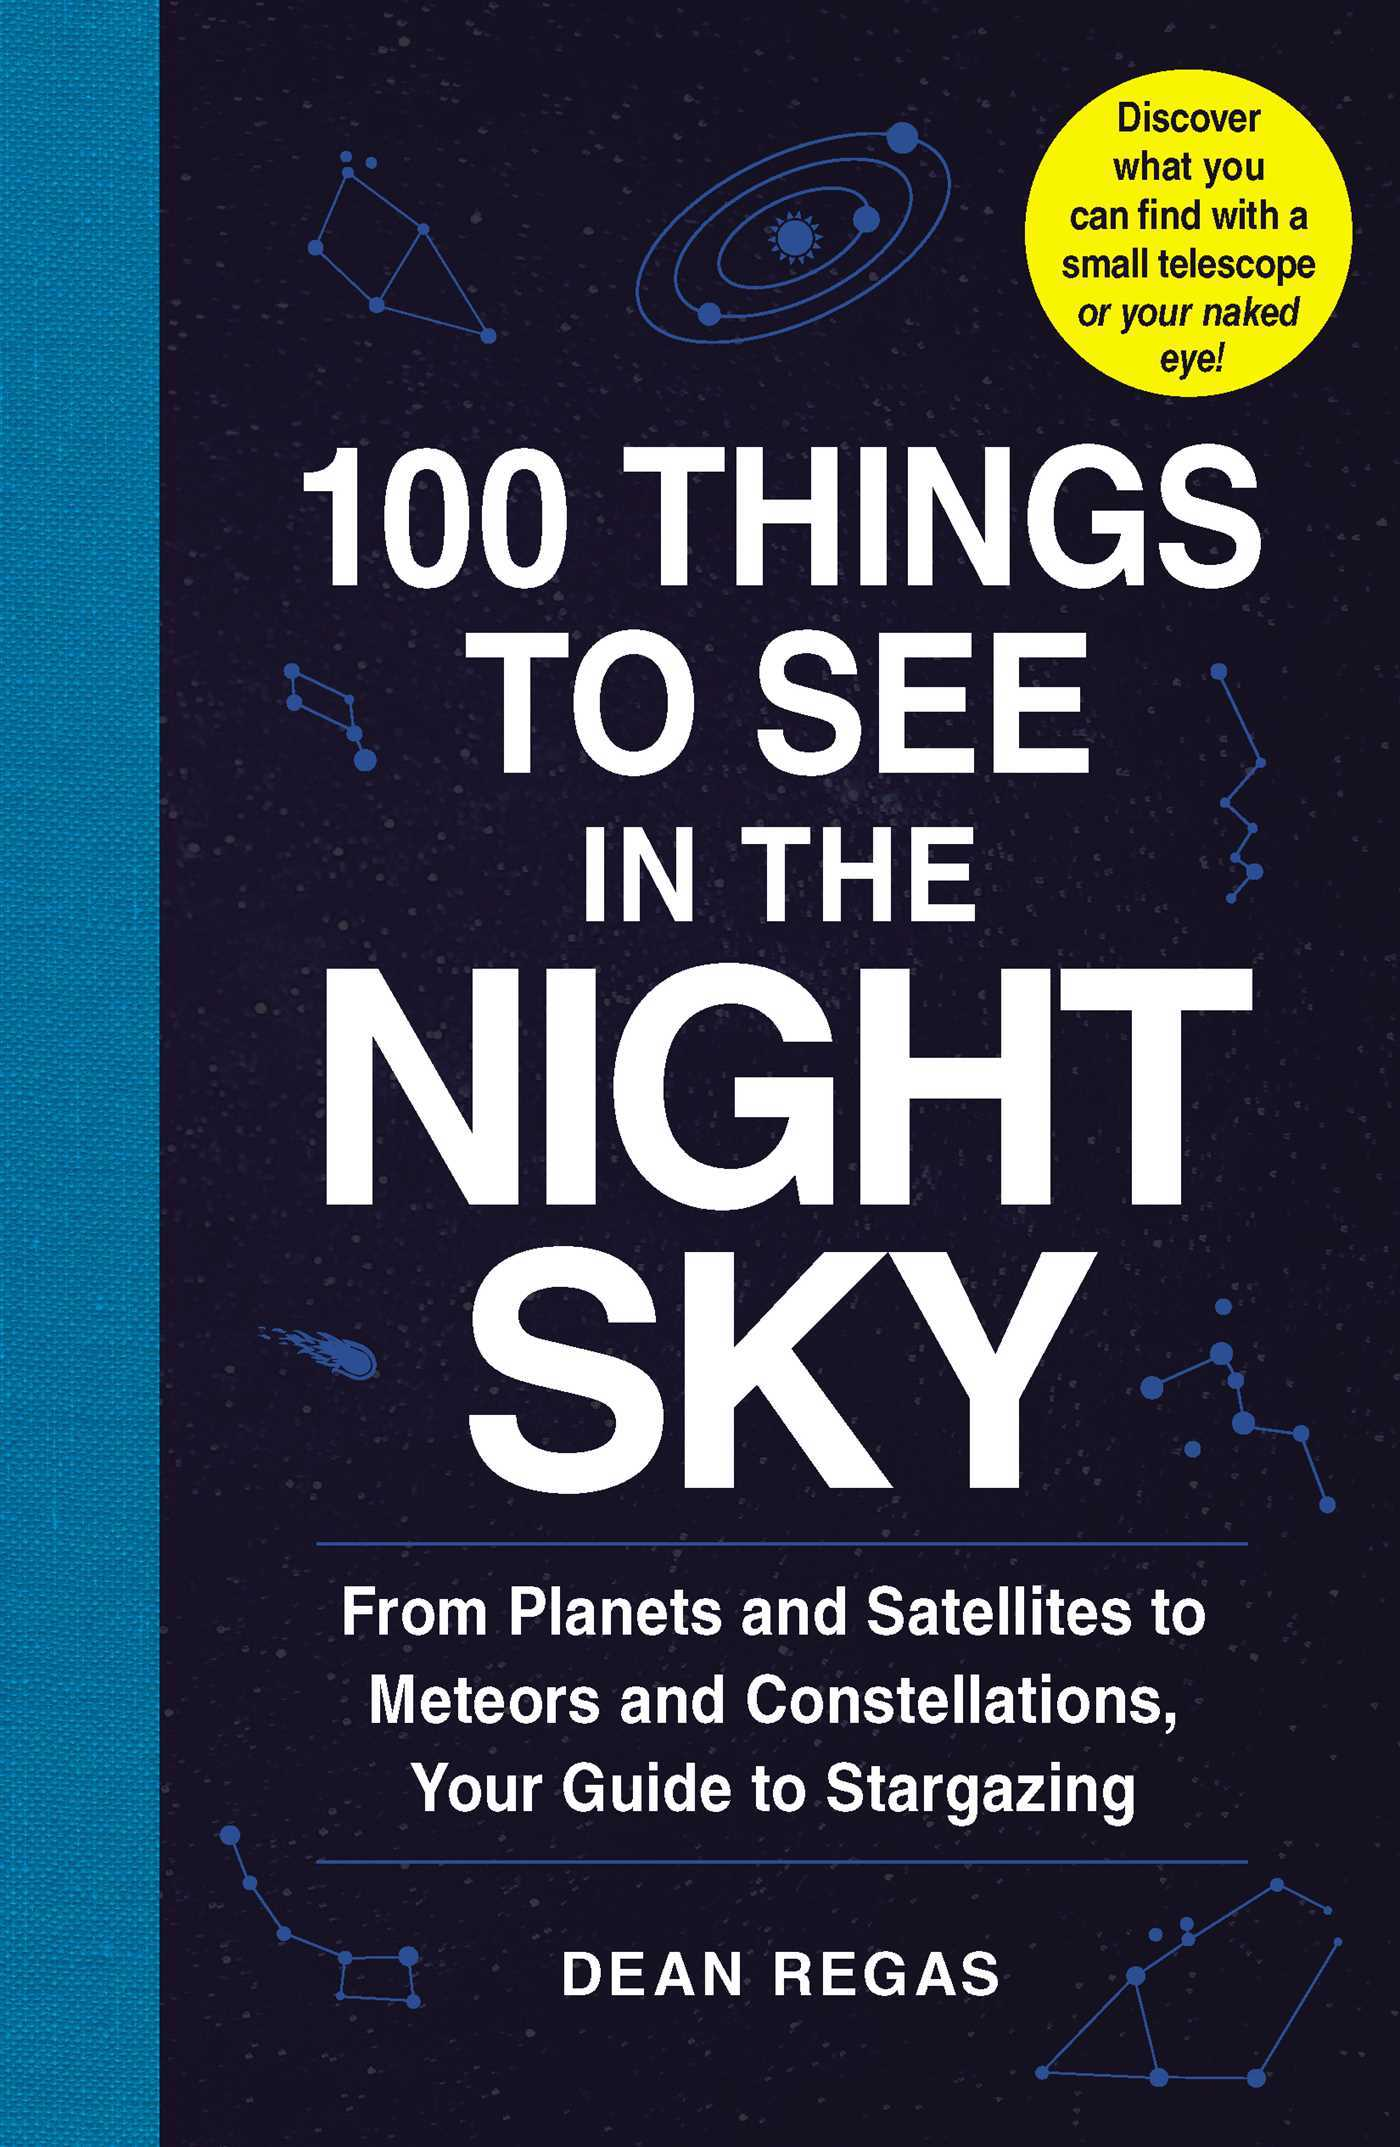 100 Things to See in the Night Sky From Planets and Satellites to Meteors and Constellations, Your Guide to Stargazing